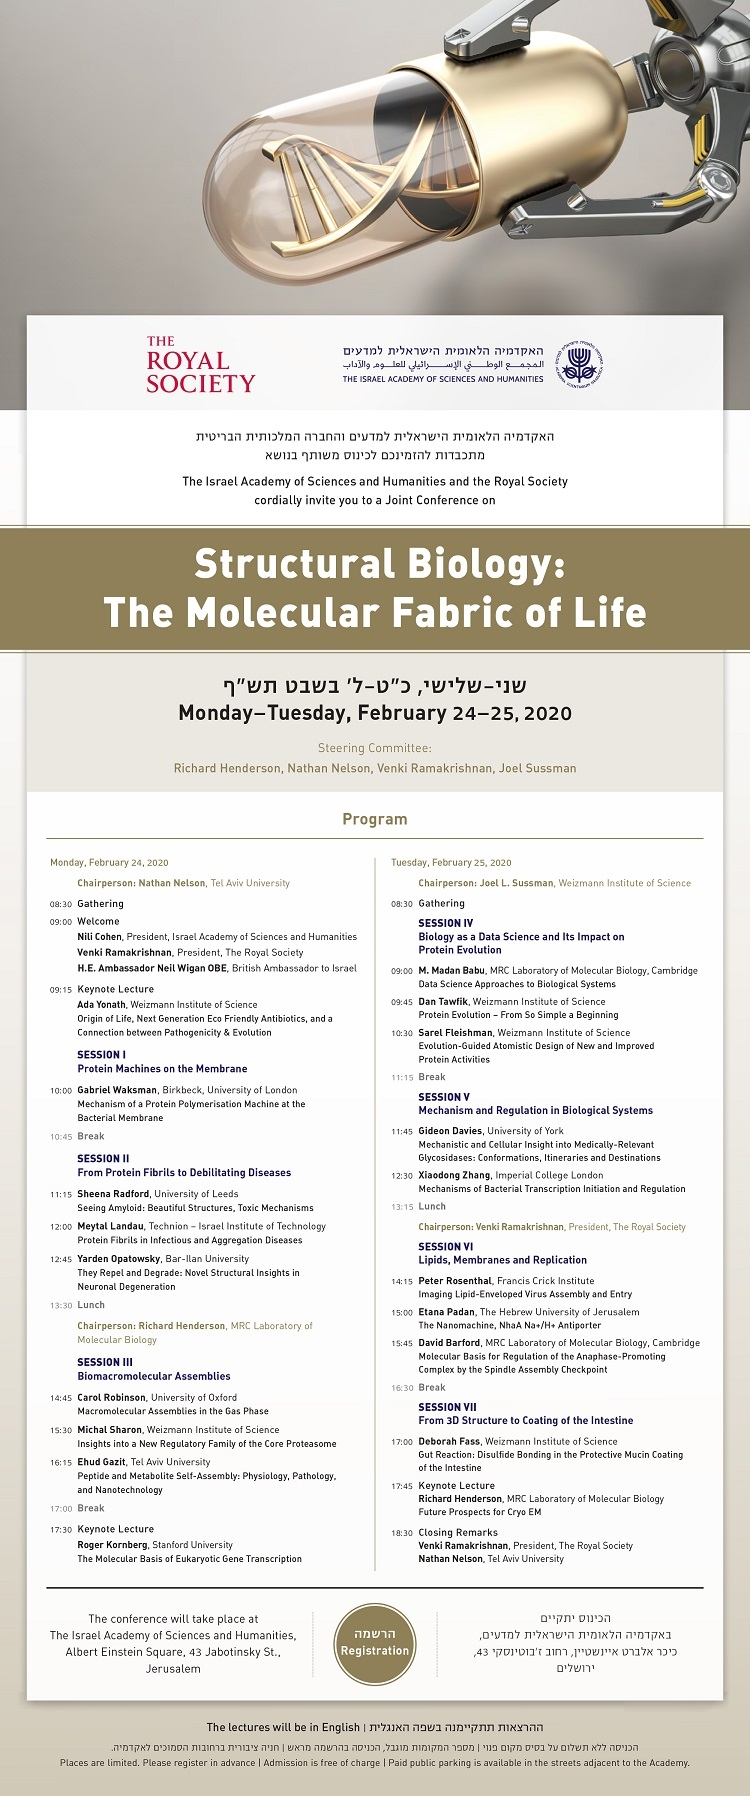 כינוס דו-לאומי בנושא Structural Biology: The Molecular Fabric of Life